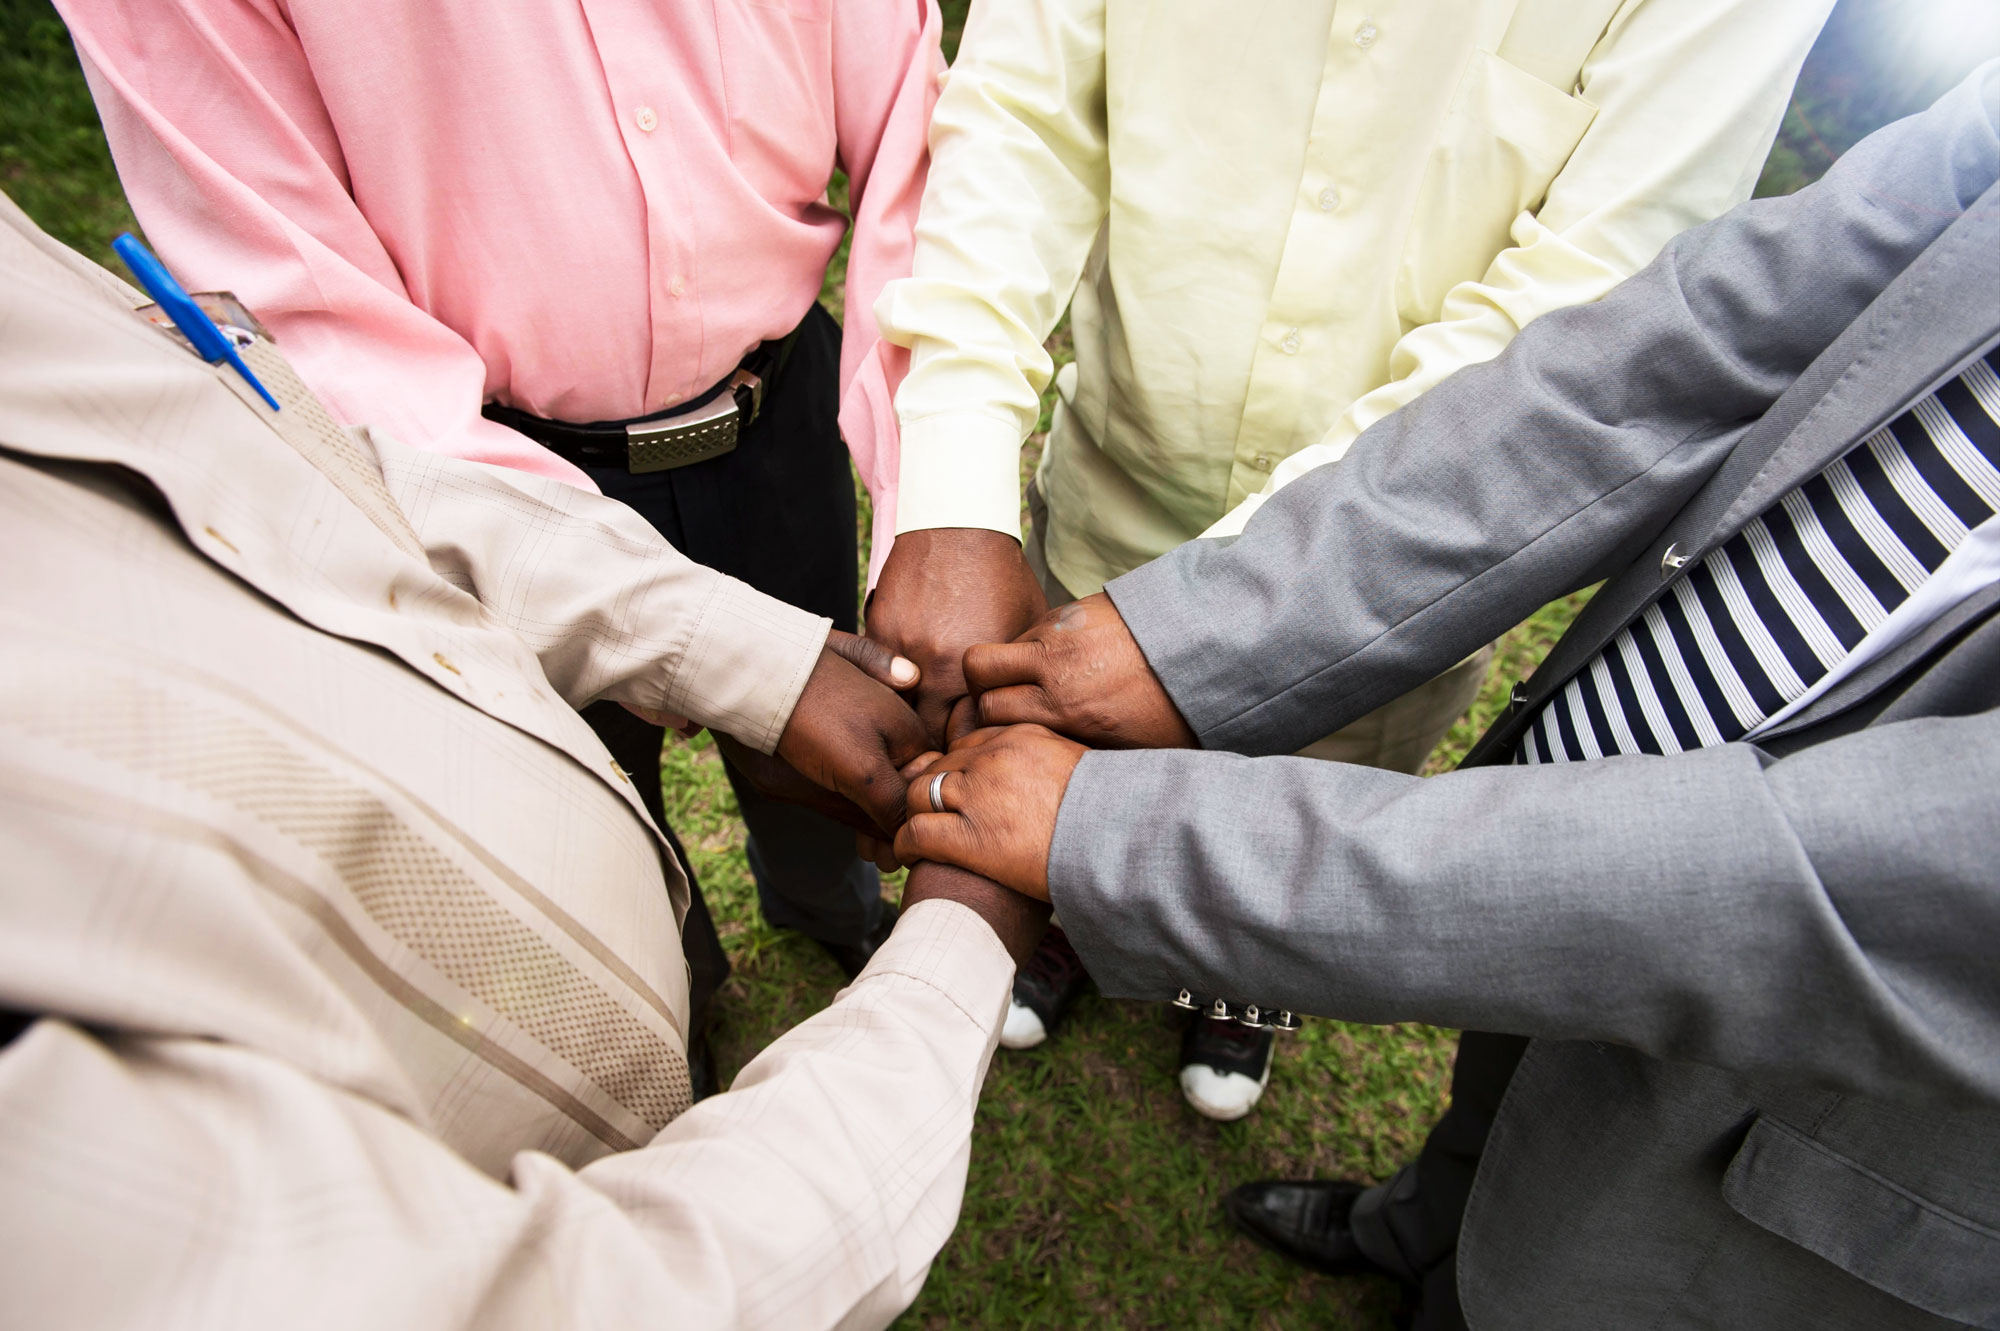 Group of people with hands in the middle in fists